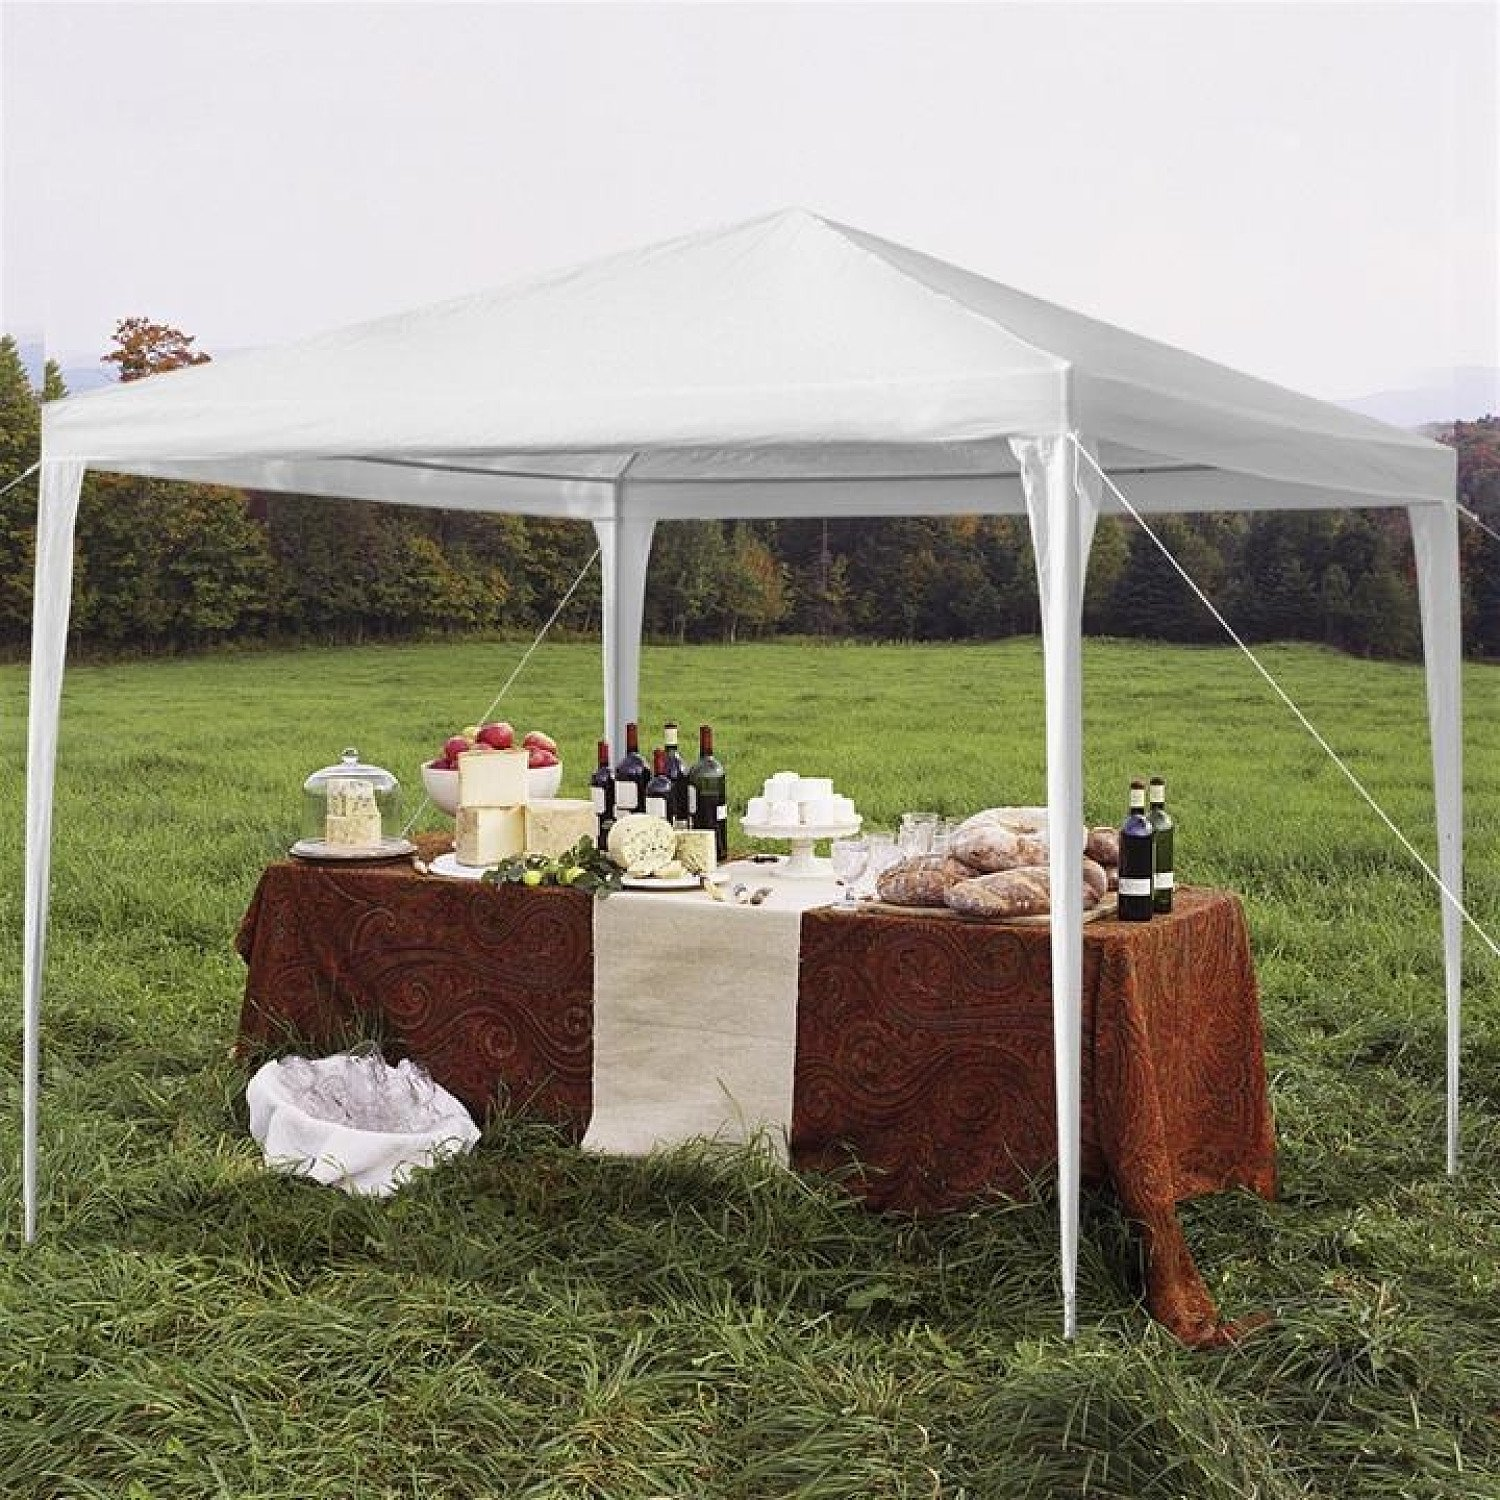 3 x 3m Waterproof Tent with Spiral Tubes White Free Postage